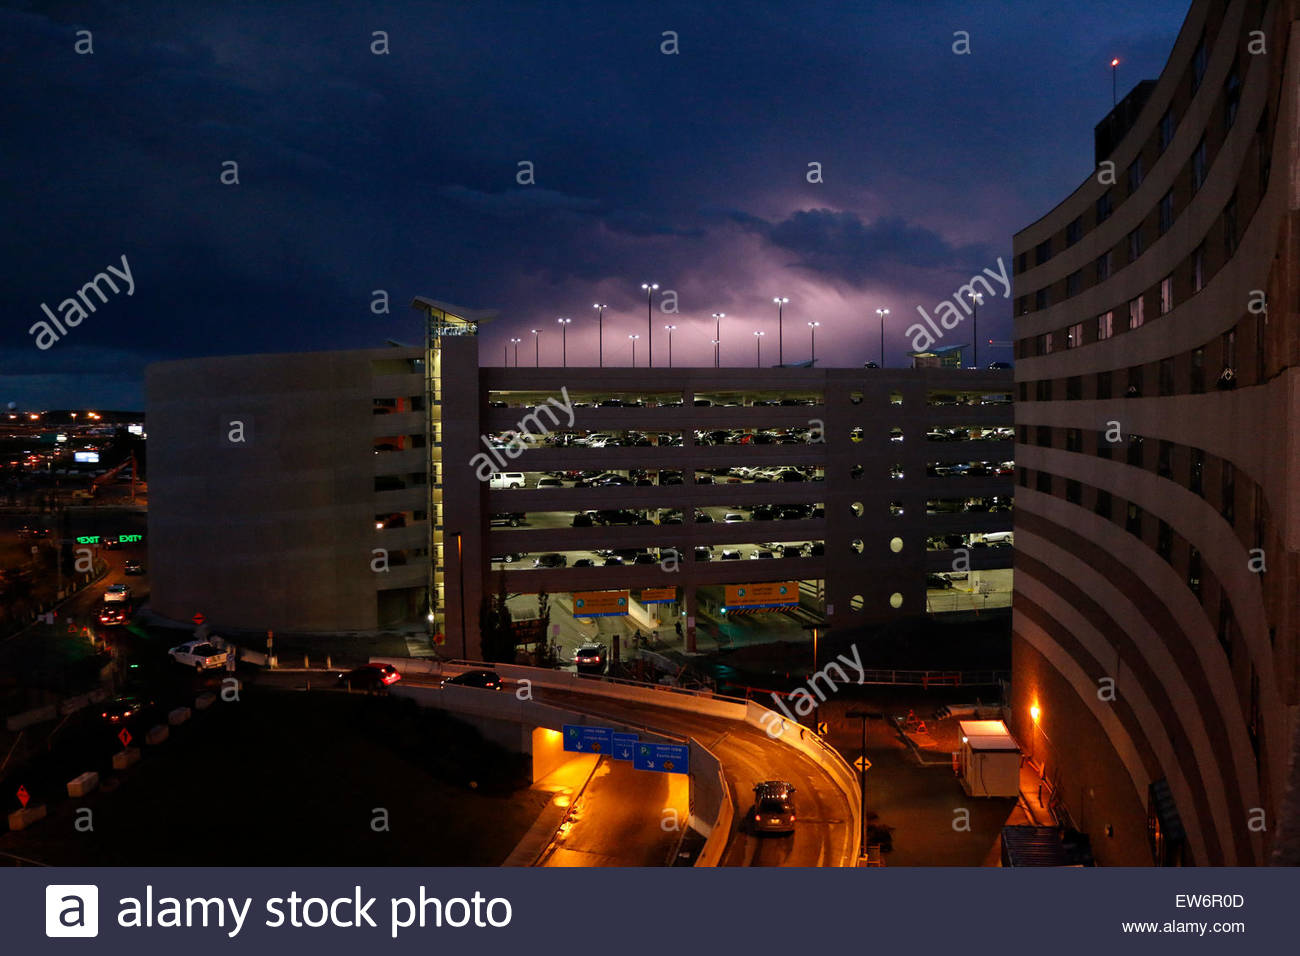 Lighting flashes above a parking garage. & Lighting flashes above a parking garage Stock Photo Royalty Free ... azcodes.com